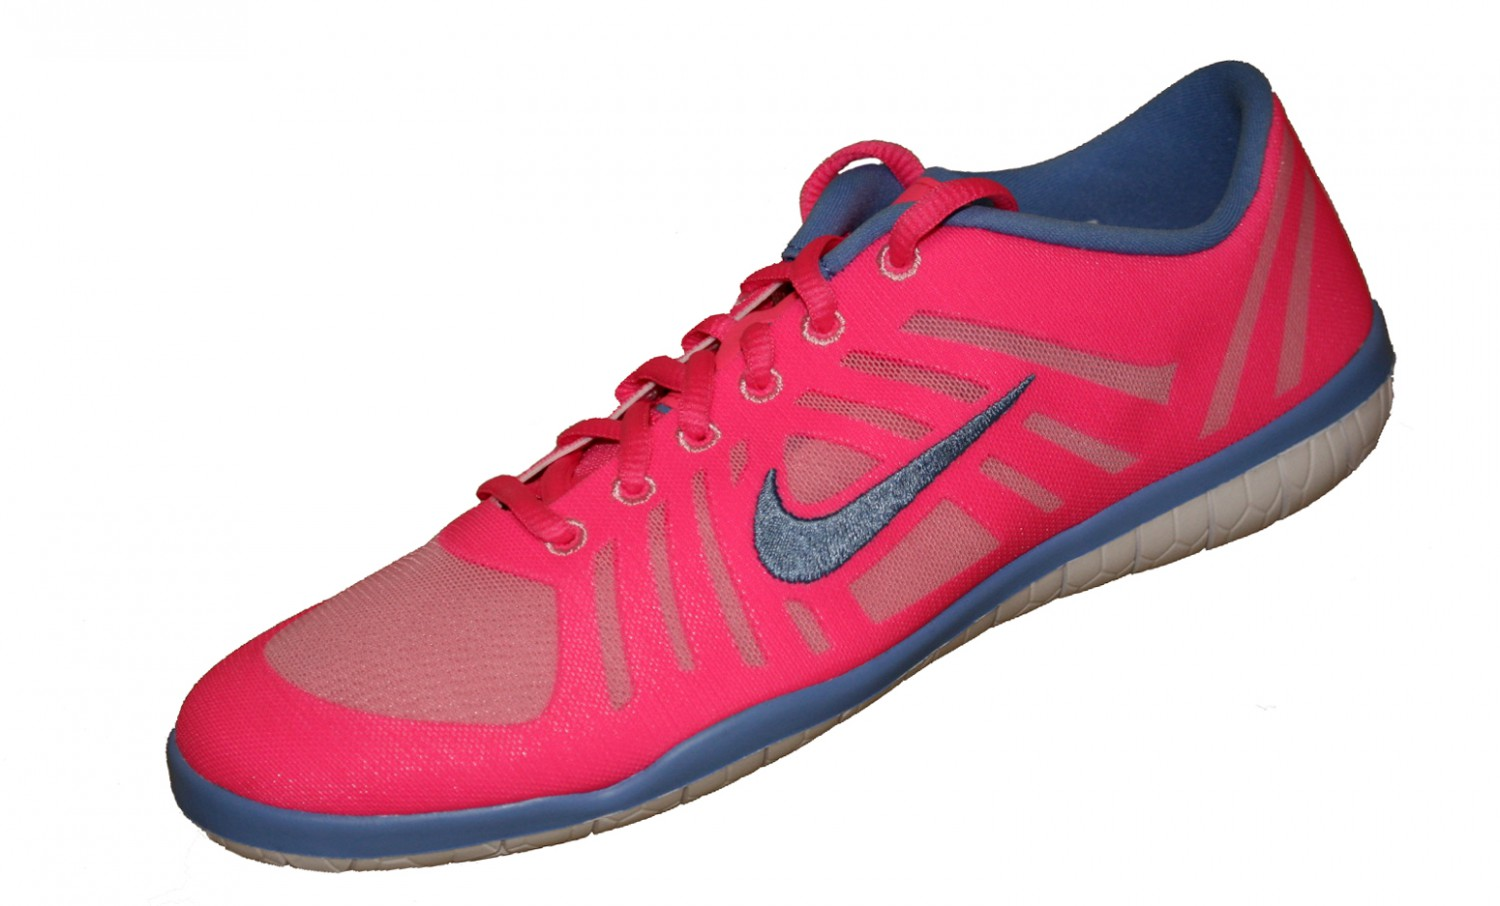 wmns nike free 3 0 studio dance sneaker 641649 pink 602. Black Bedroom Furniture Sets. Home Design Ideas